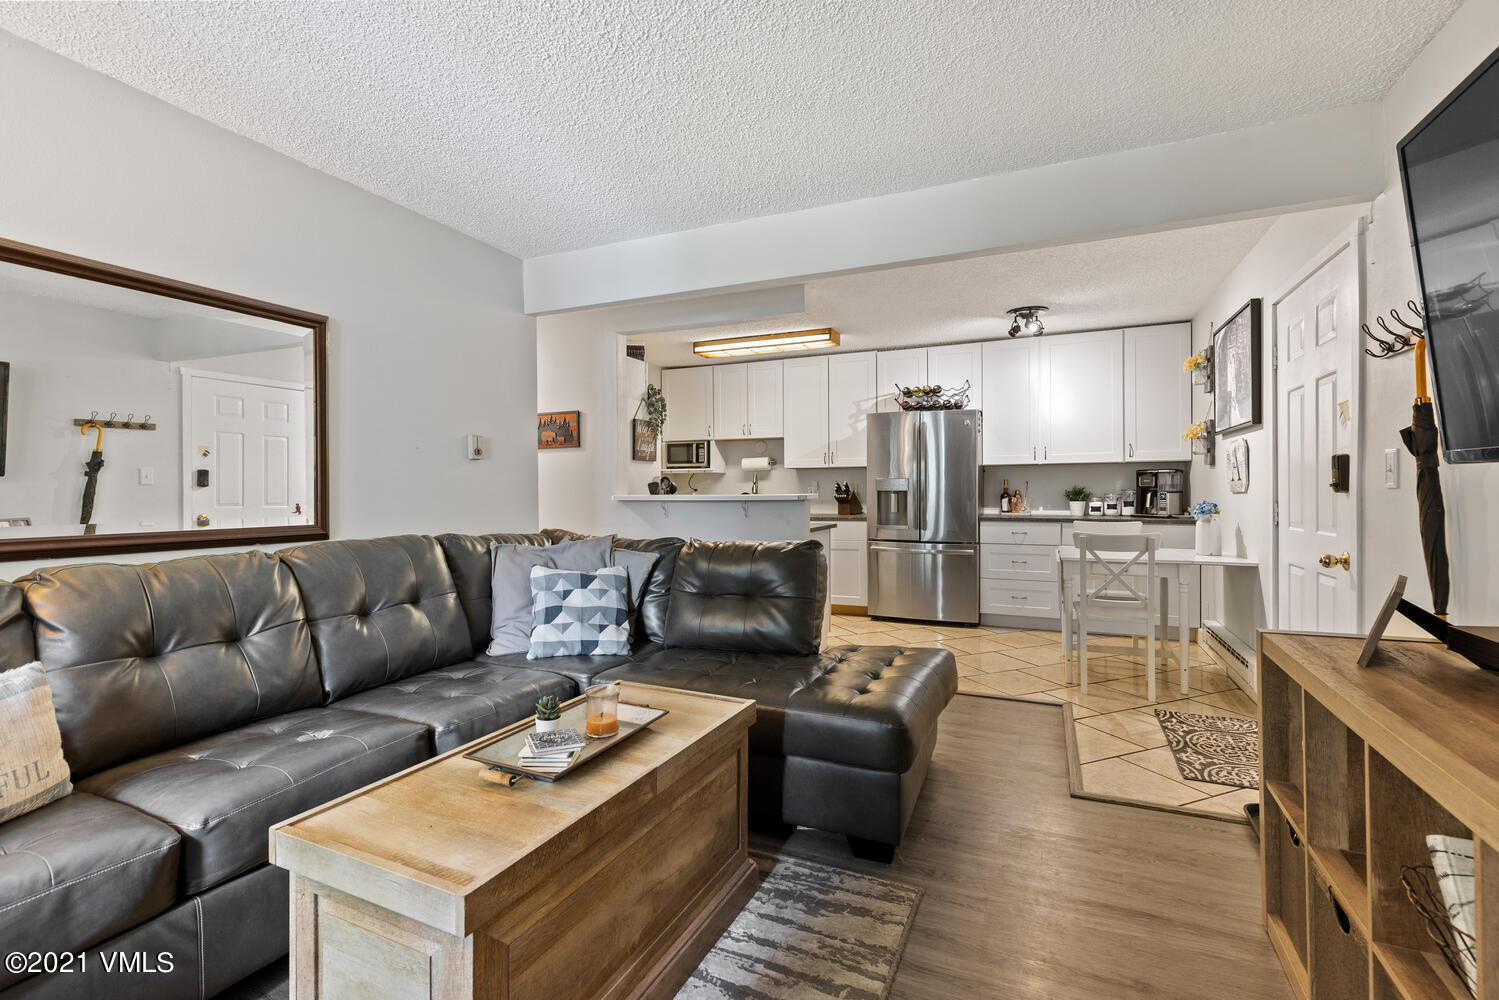 This is your opportunity to own at Liftview Condominiums. This 2-bed, 2-bath with a wood burning fireplace has been recently updated throughout. This corner unit offers an extra window in the master bedroom. Storage closet across from your front door for all of your storage needs. 2 parking spaces total, 1 assigned and 1 unassigned. Liftview is ideally located just across from the Bear Lot, providing easy access to Beaver Creek, and is walking distance to bus stops on well-maintained walking/bike paths, Nottingham Lake, the library, the Rec Center, shopping and restaurants. See the updates/finishes sheet in documents.